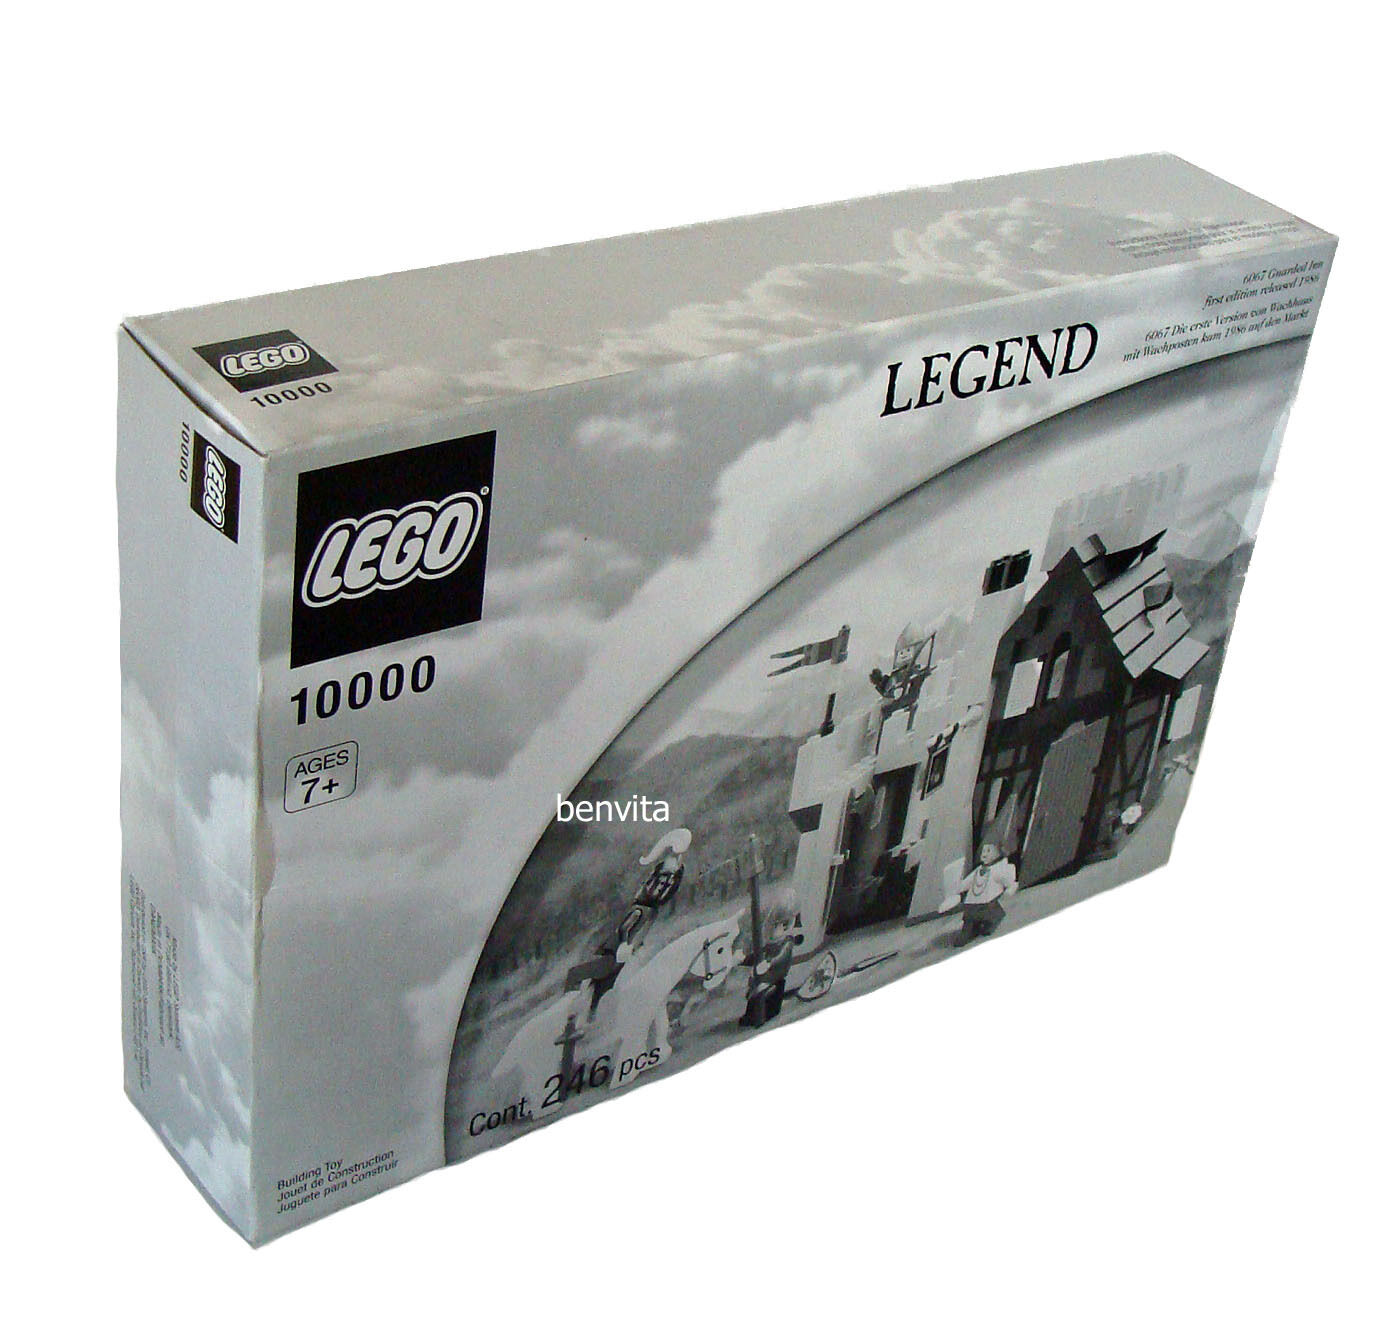 LEGO ® Legend - 10000  6067  Guarded Inn 246 parti 7+ - NUOVO